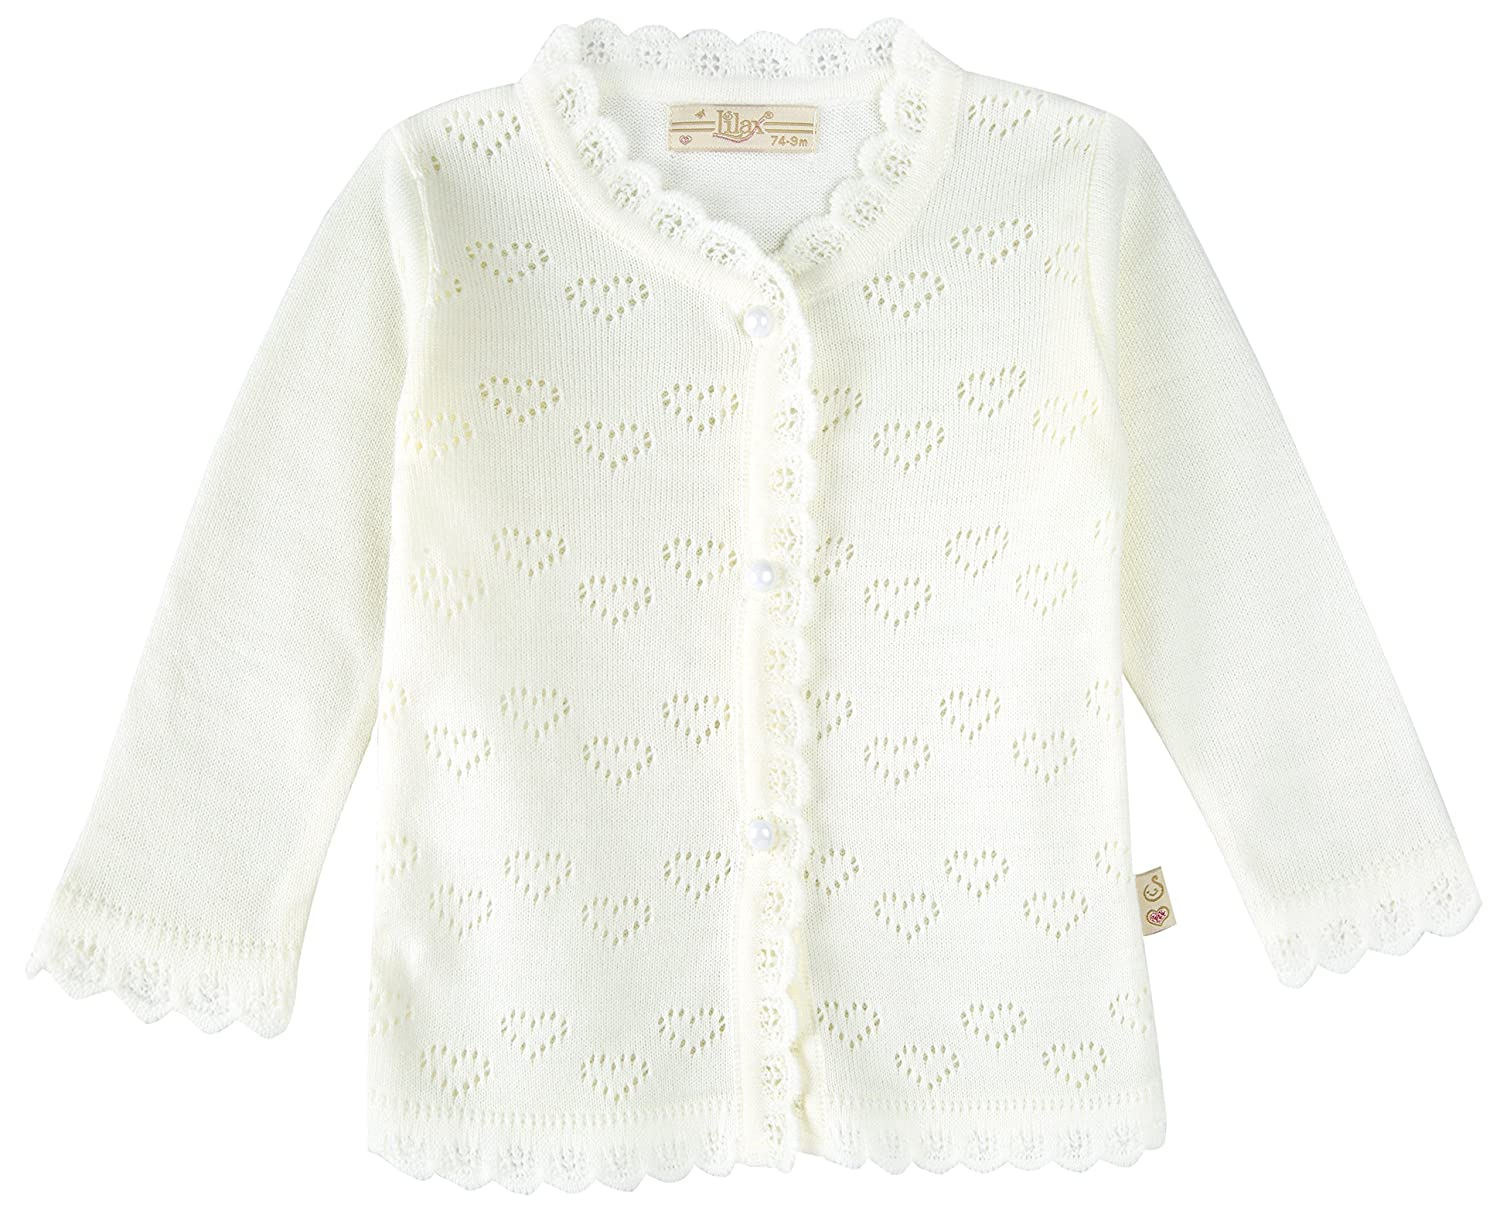 Lilax Baby Girls Little Hearts Knit Cardigan Sweater